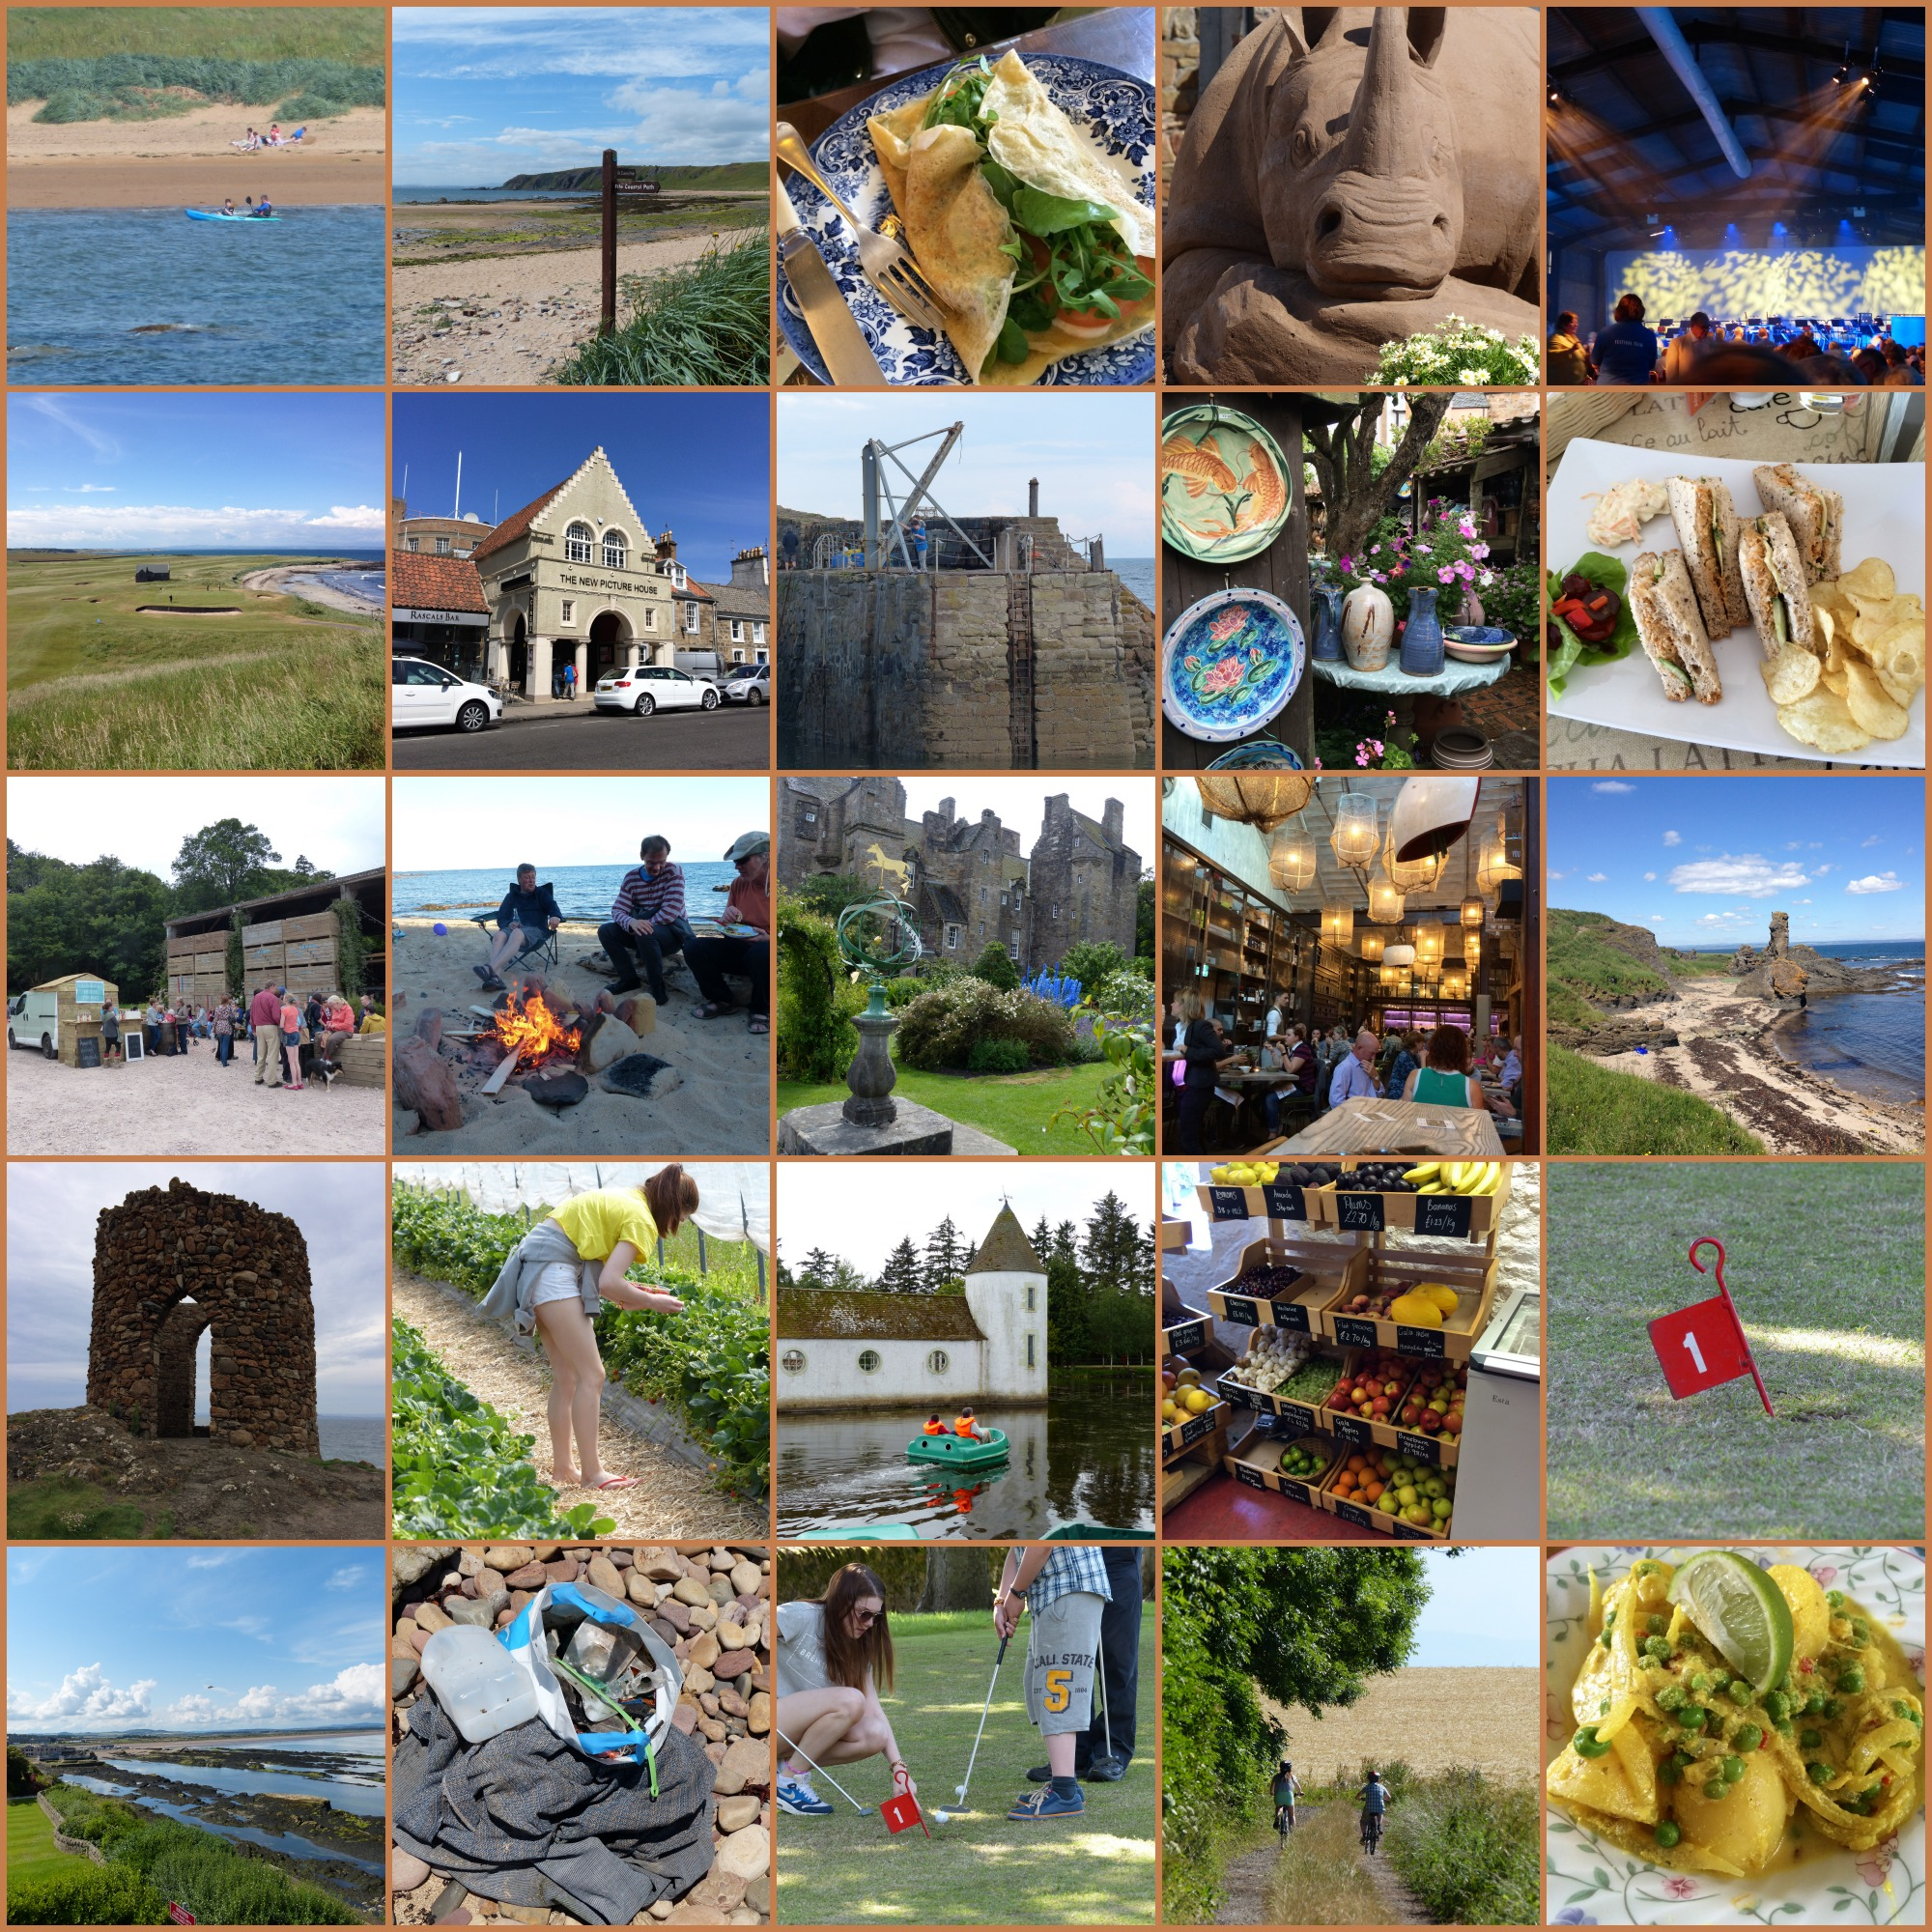 25 things to do on a holiday in the East Neuk of Fife